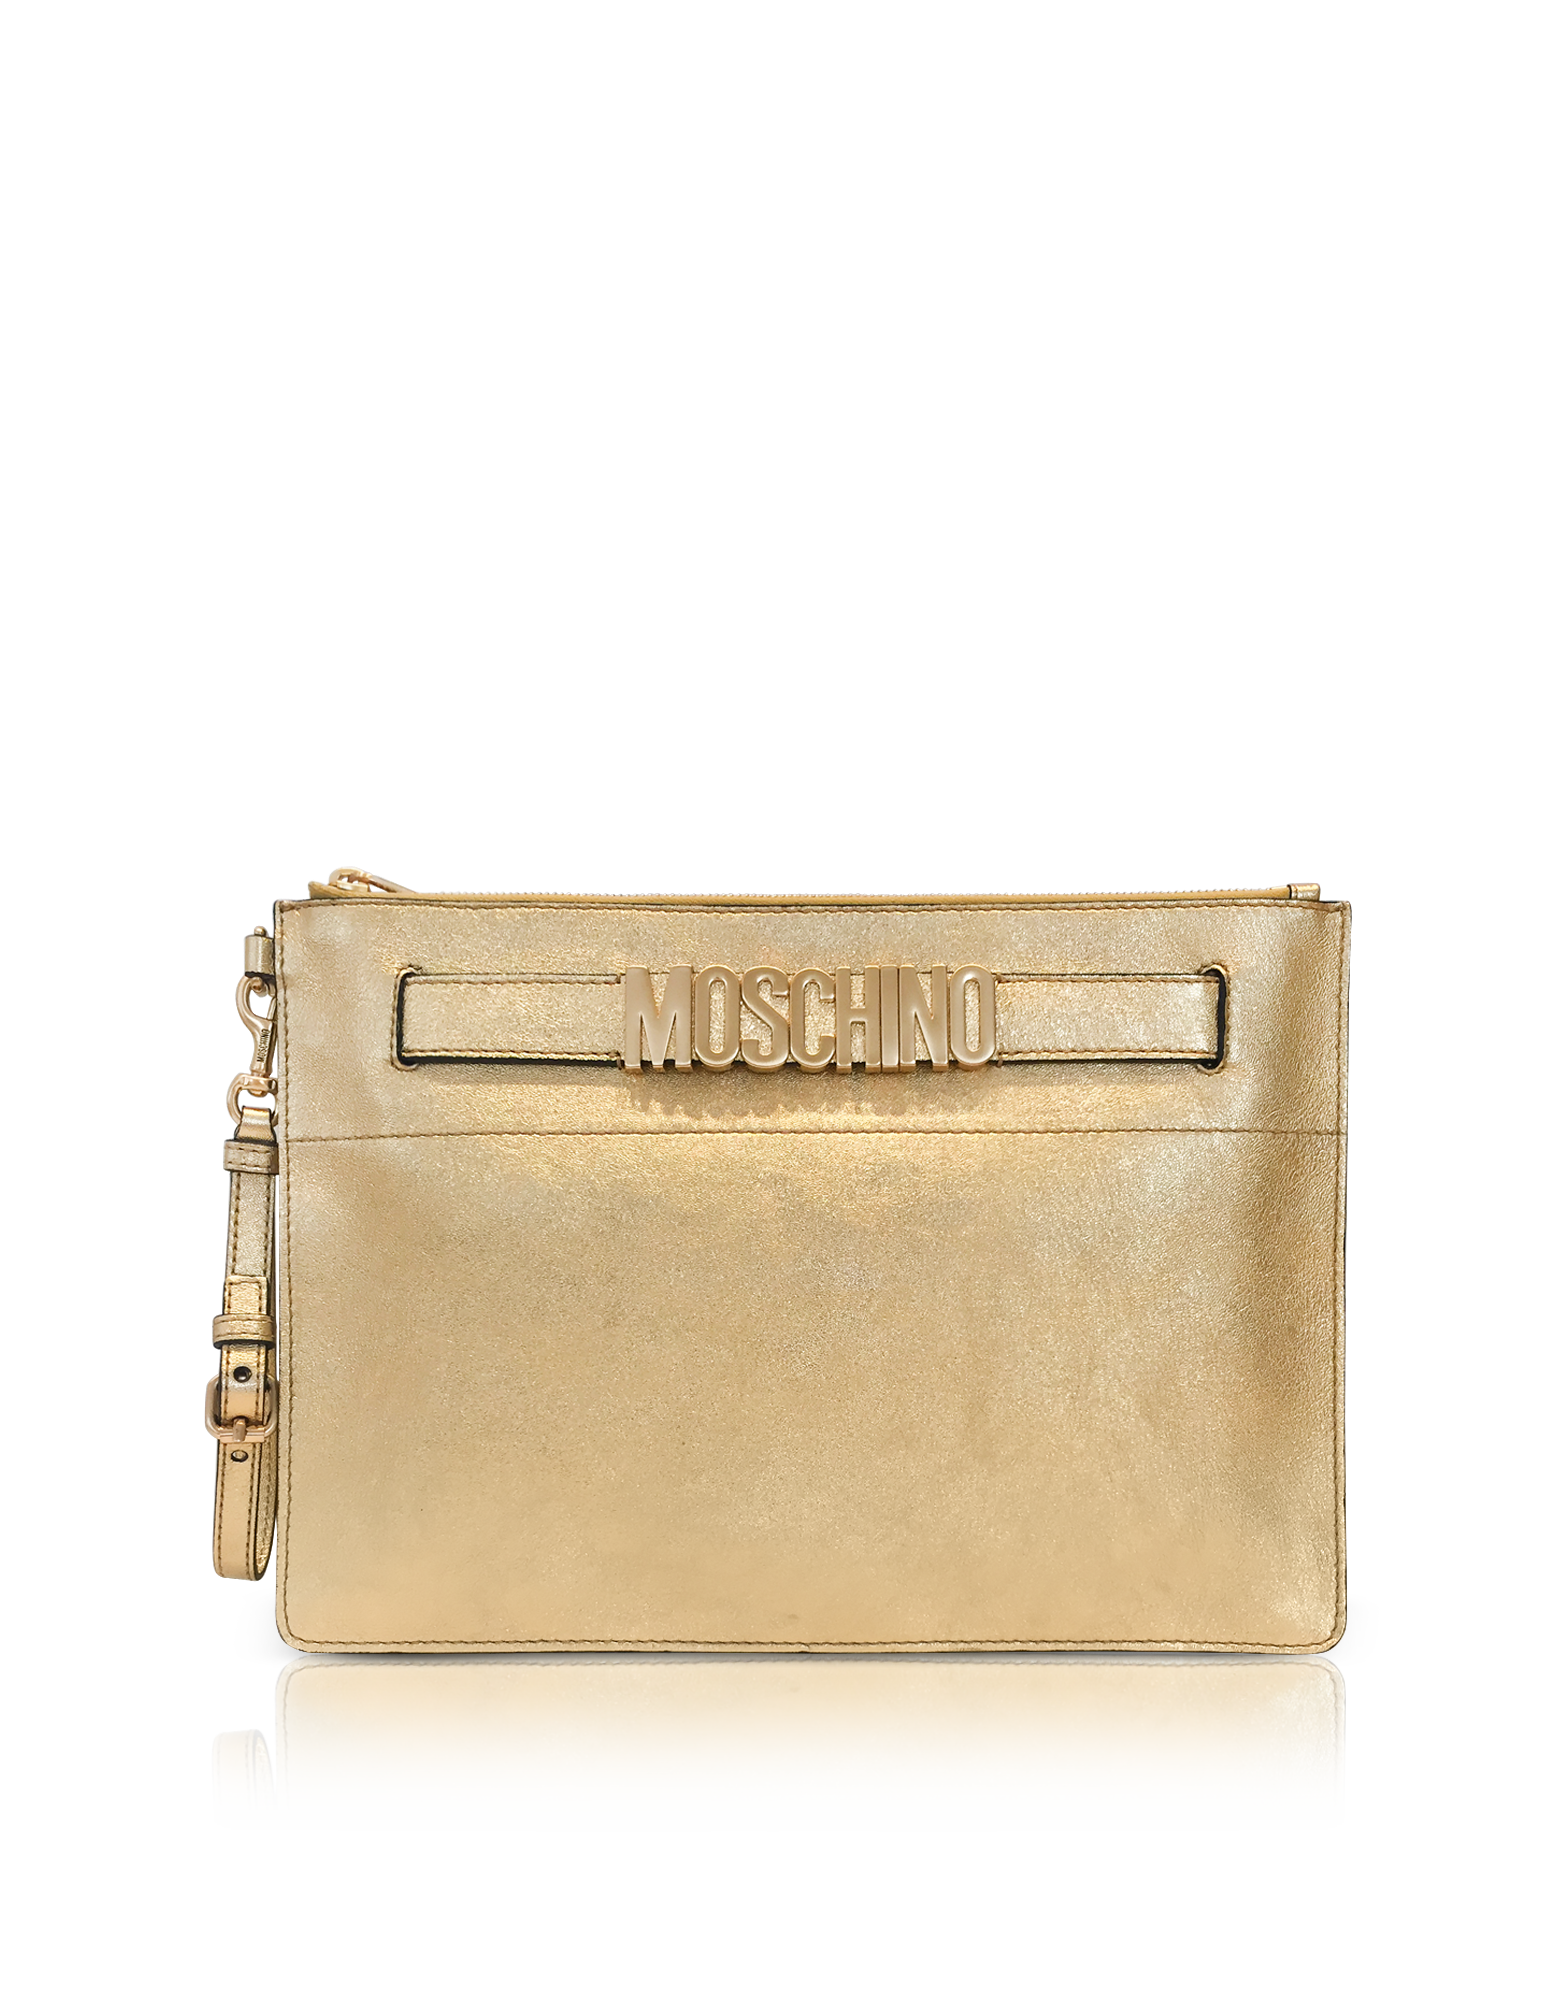 e7a1bec55bf ON SALE: Moschino - Gold Metallic Leather Clutch w/Signature Logo ...